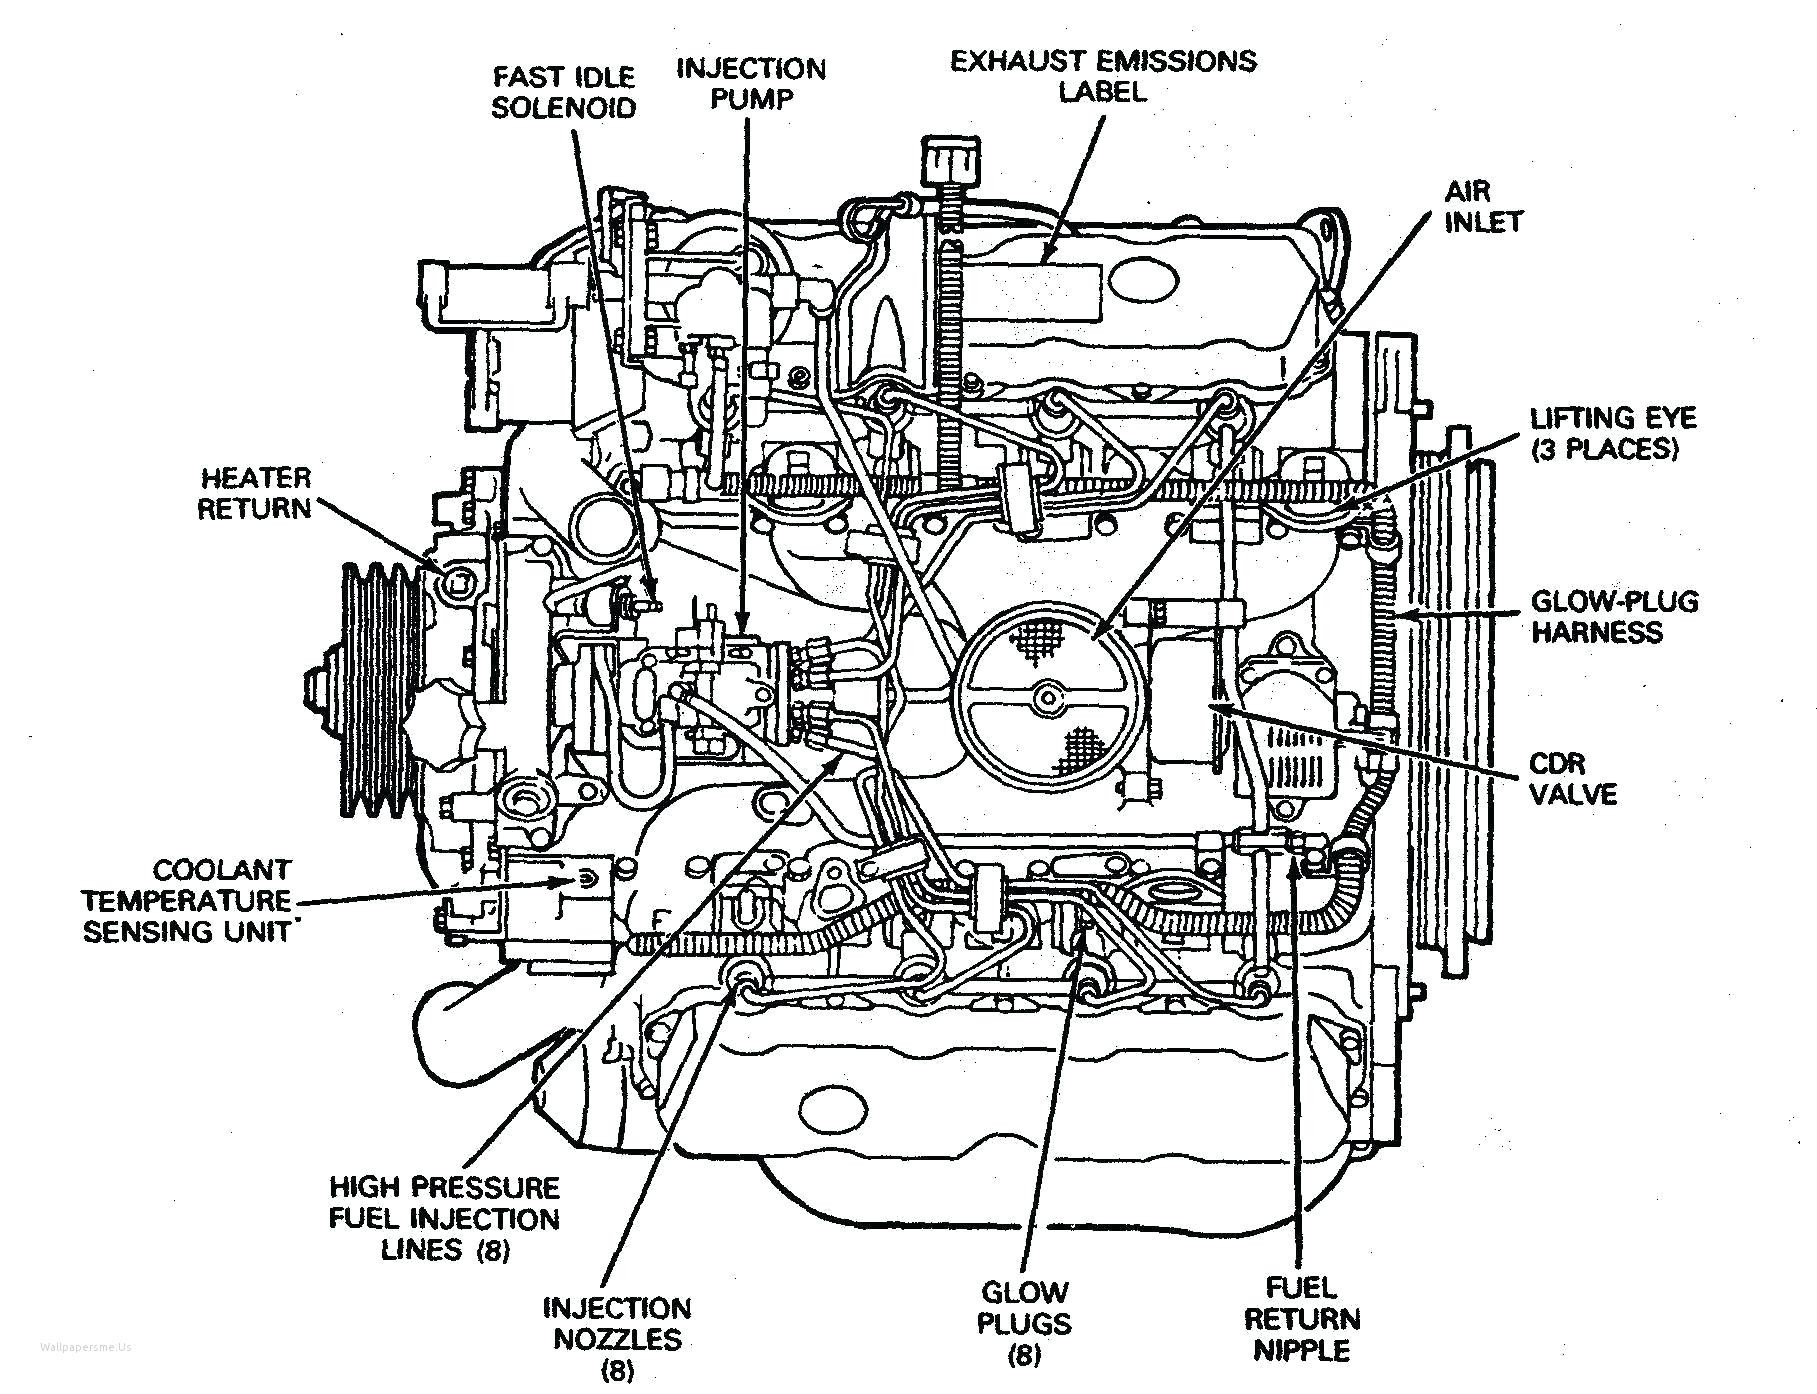 460 Engine Parts Diagram Labeled - Wiring Diagram •